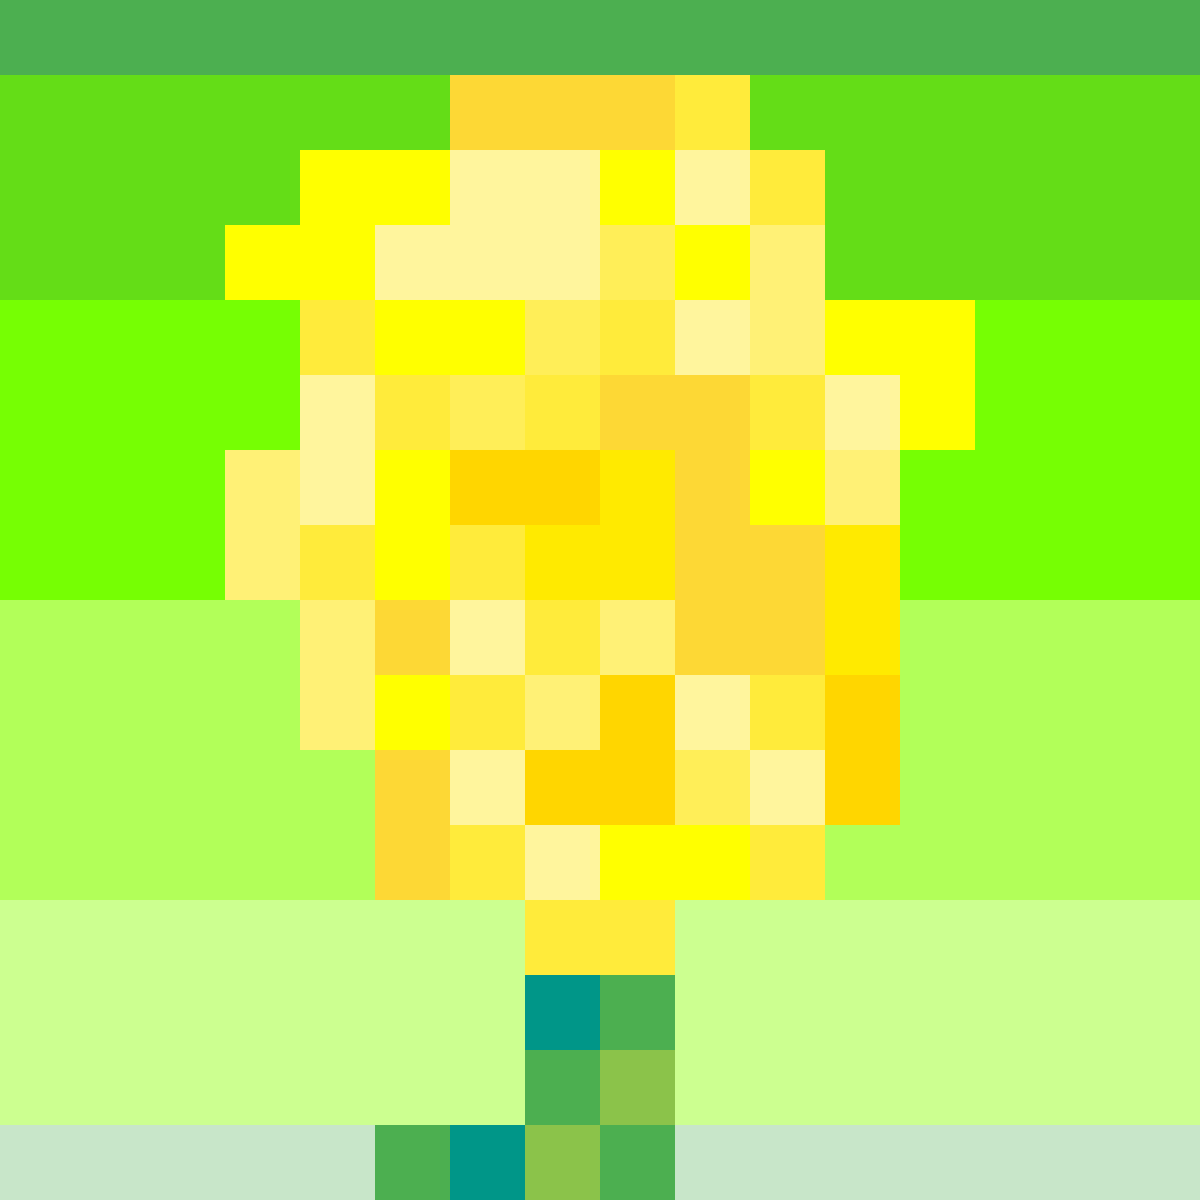 Flower 3 by Ilovefrogs1234